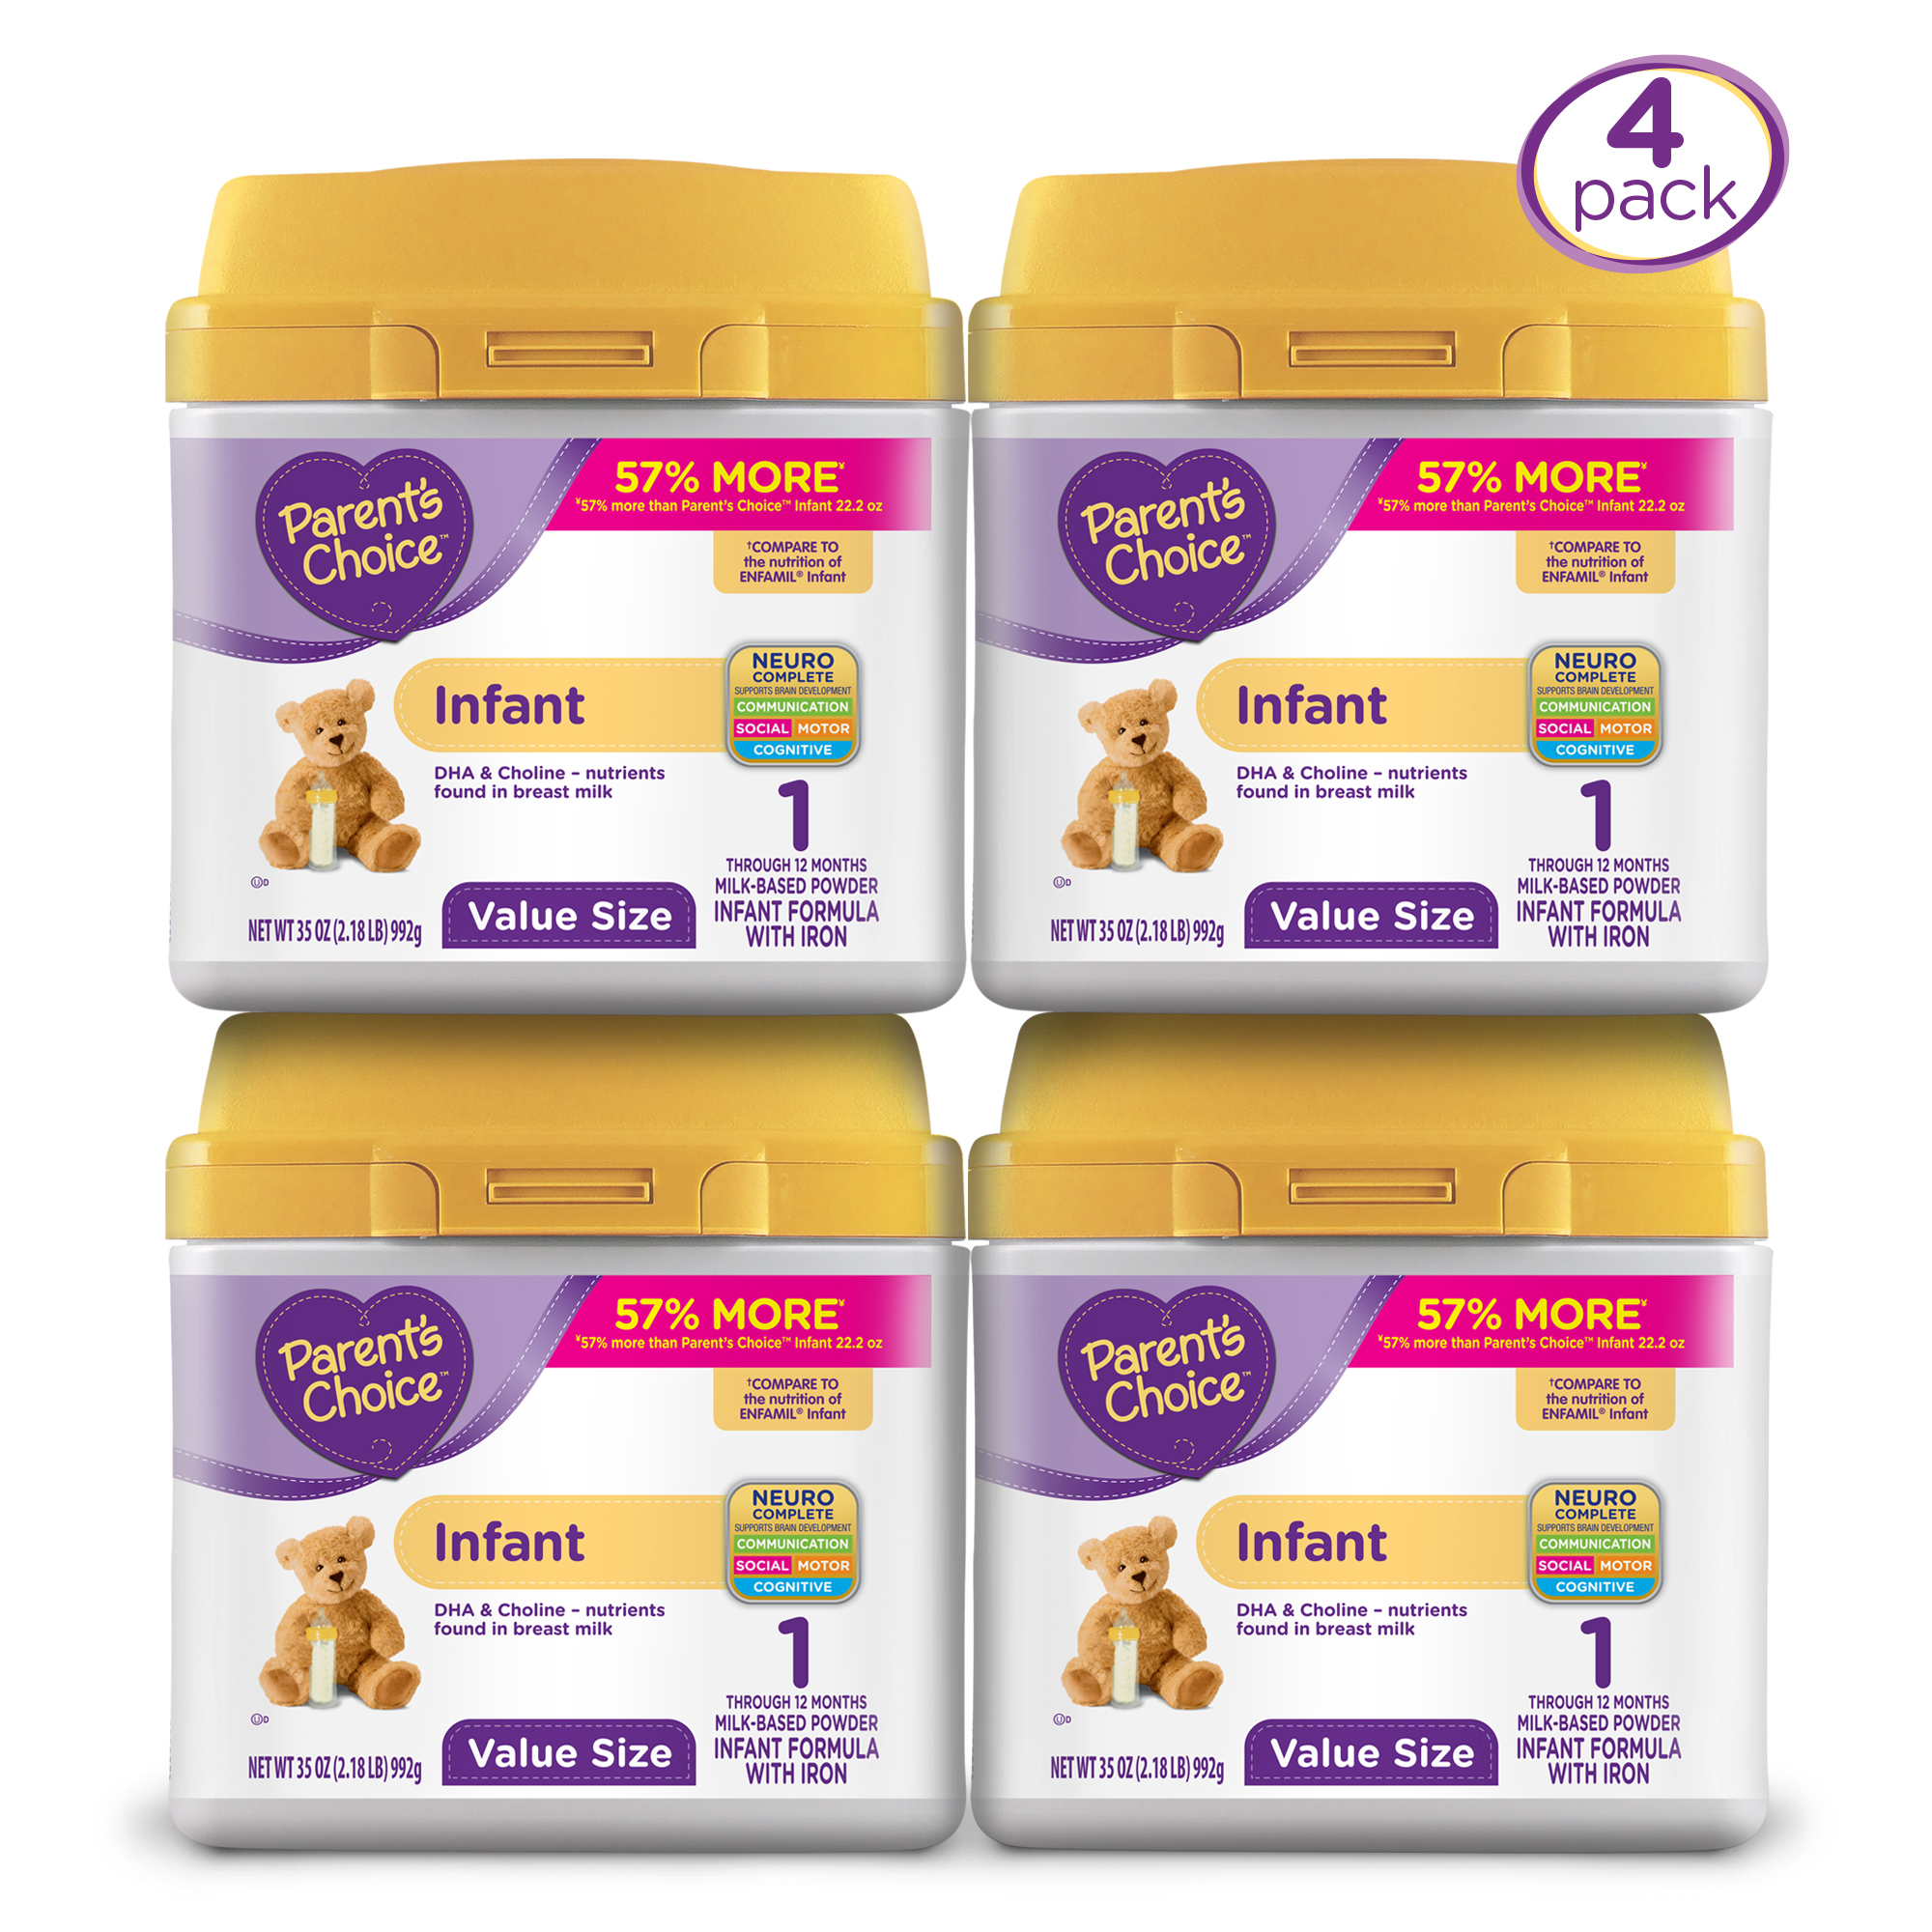 Parent's Choice Infant Powder Formula (4 Pack) with Iron, 35oz